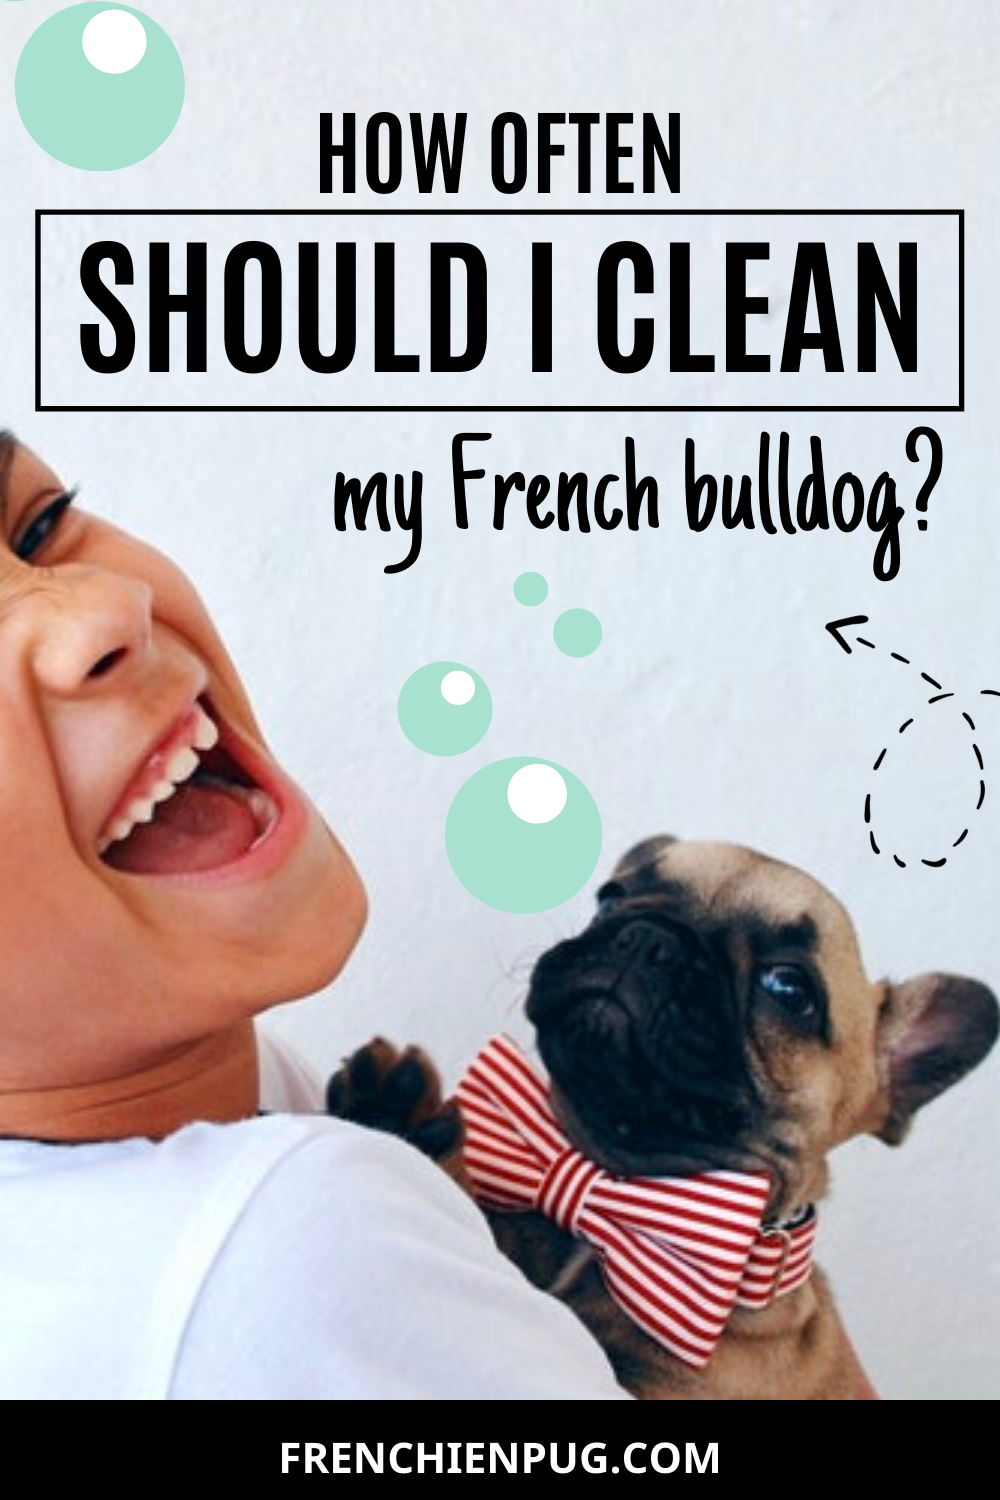 How often should I clean my French bulldog?